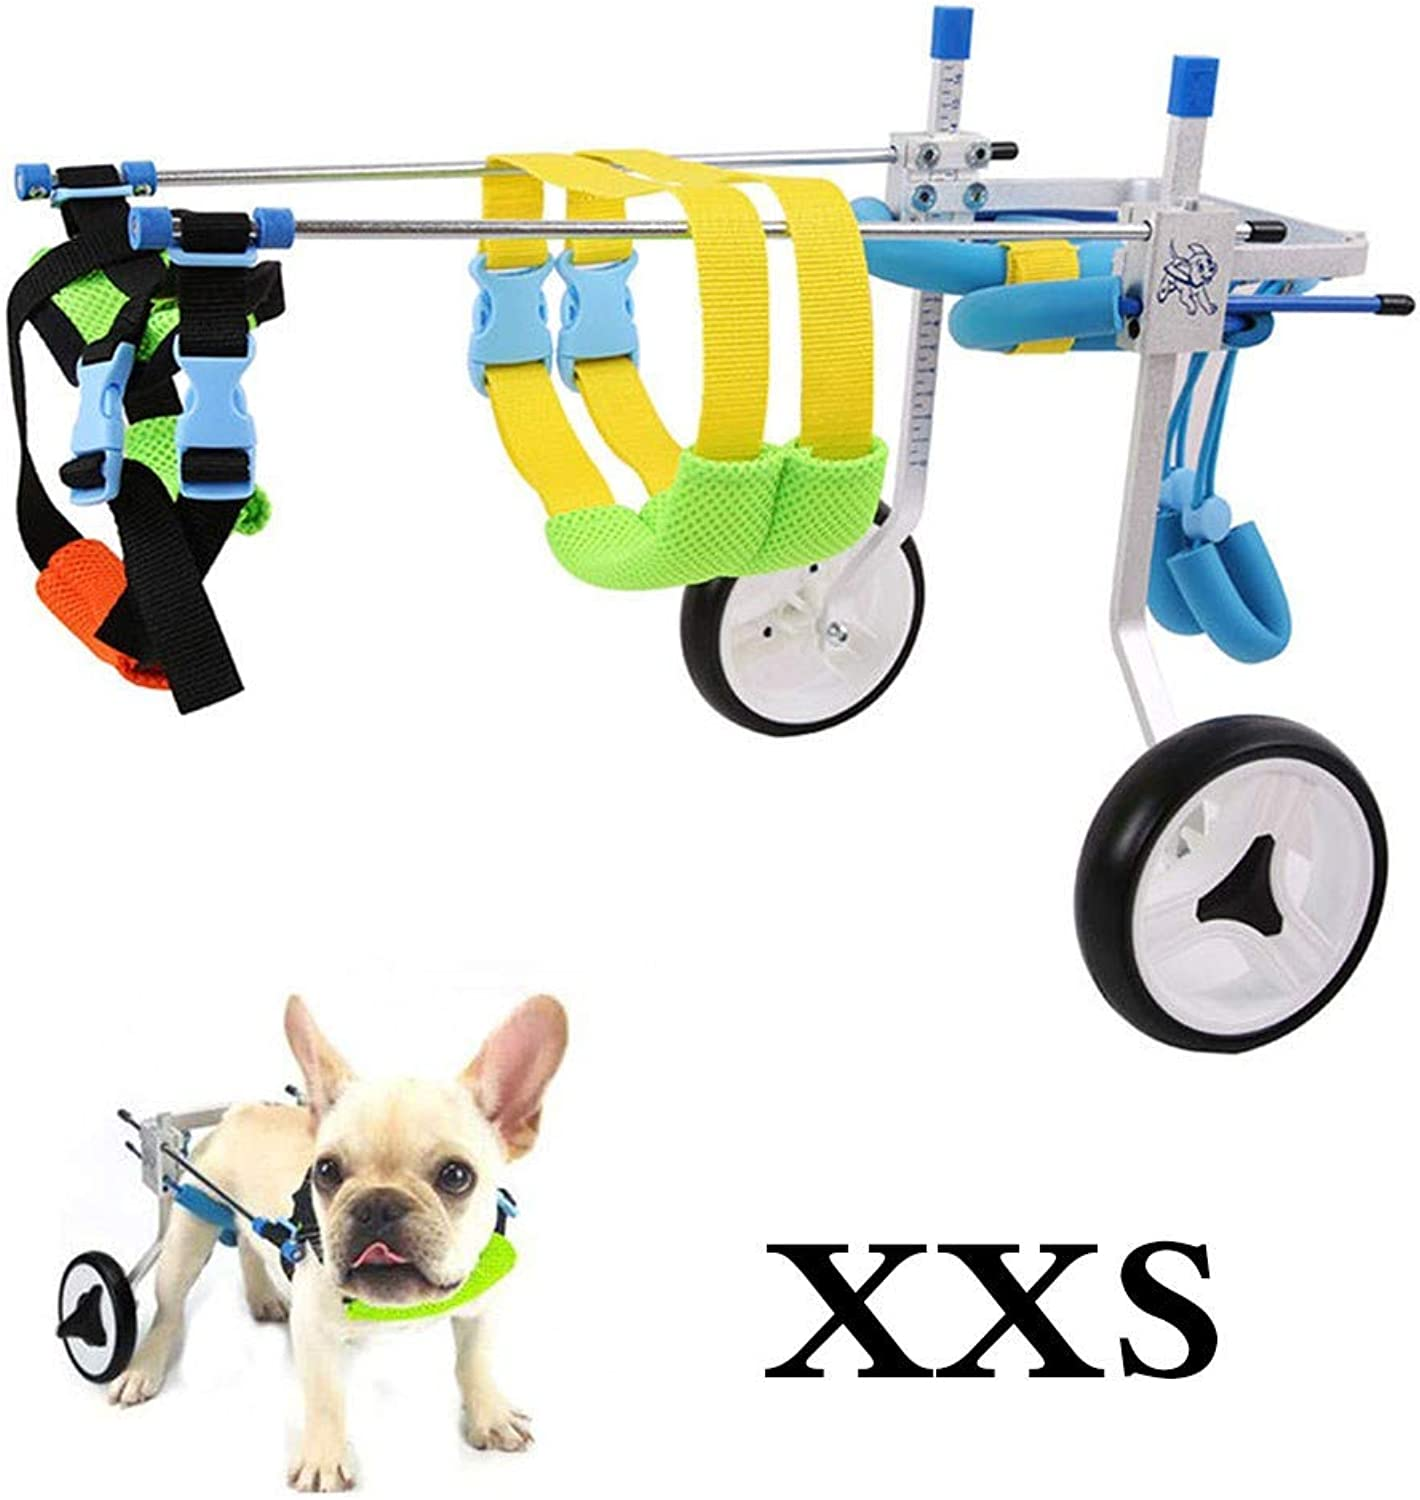 BEST WALKING Dog Wheelchair Adjustable Hind Leg Rehabilitation 2 Wheels Light Weight Easy Assemble Pet Mobility Aids For Handicapped Small Dog Doggie Puppy